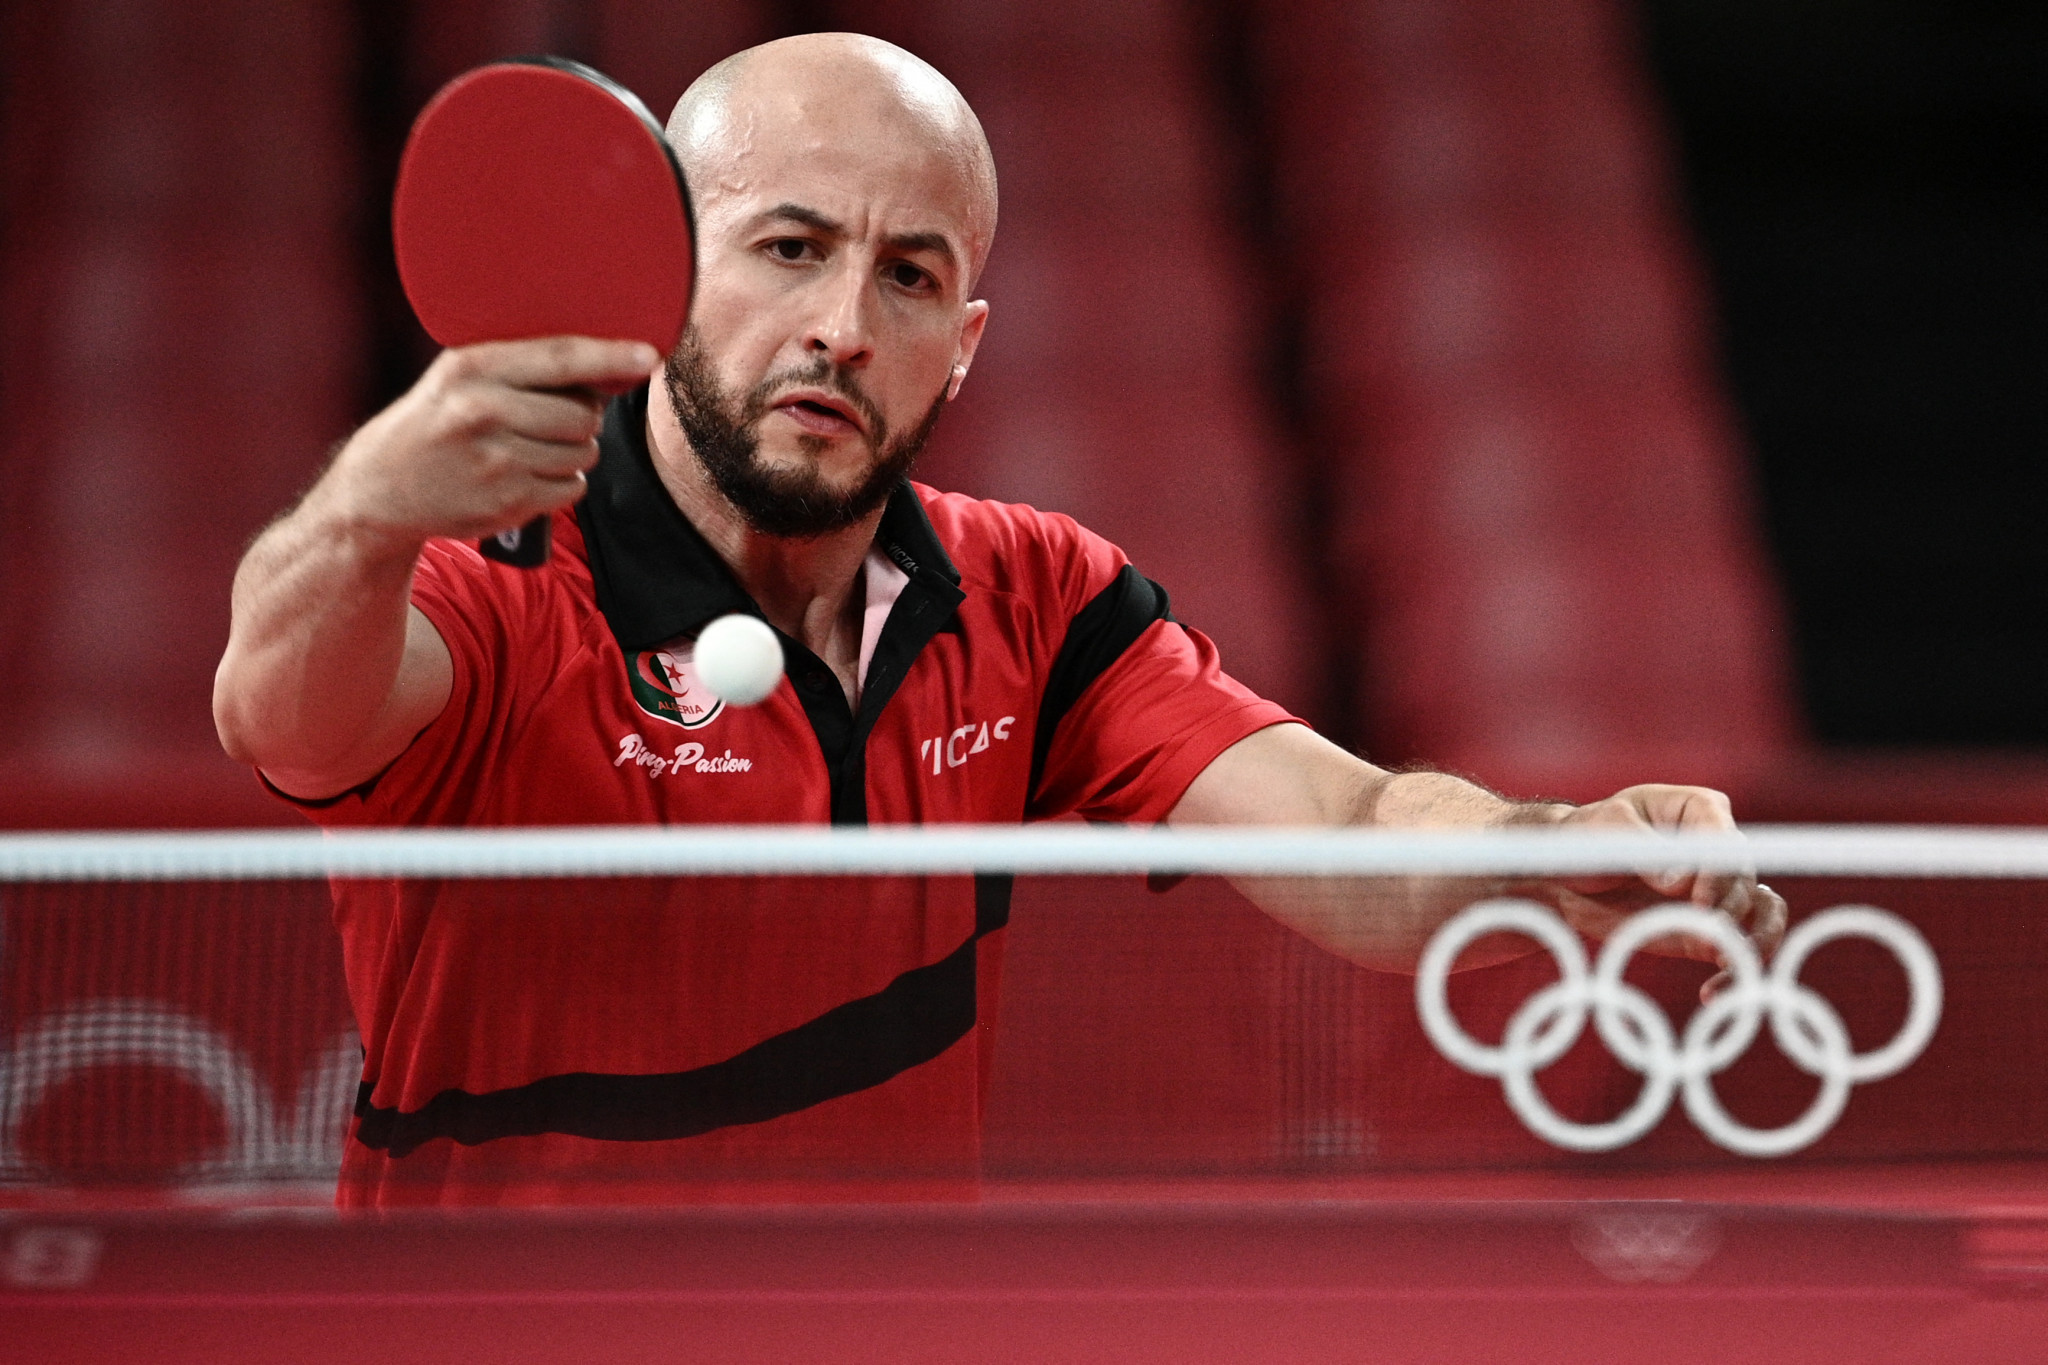 Larbi Bouriah was eliminated in the first round of the men's singles event at the Tokyo 2020 Olympic Games ©Getty Images